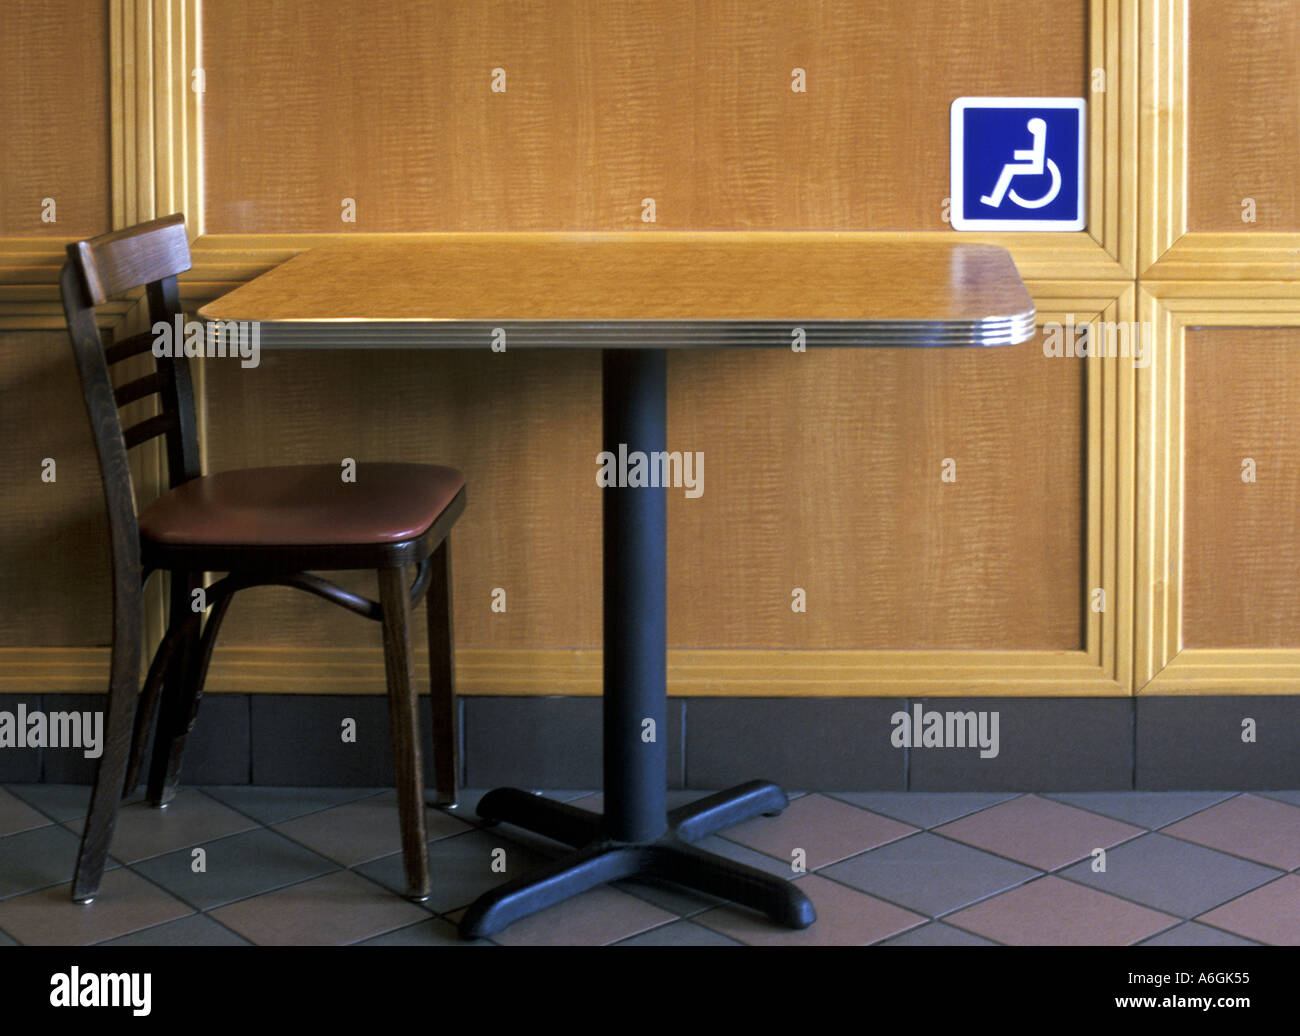 Empty Chair and table with handicap sign Stock Photo: 3777364 - Alamy